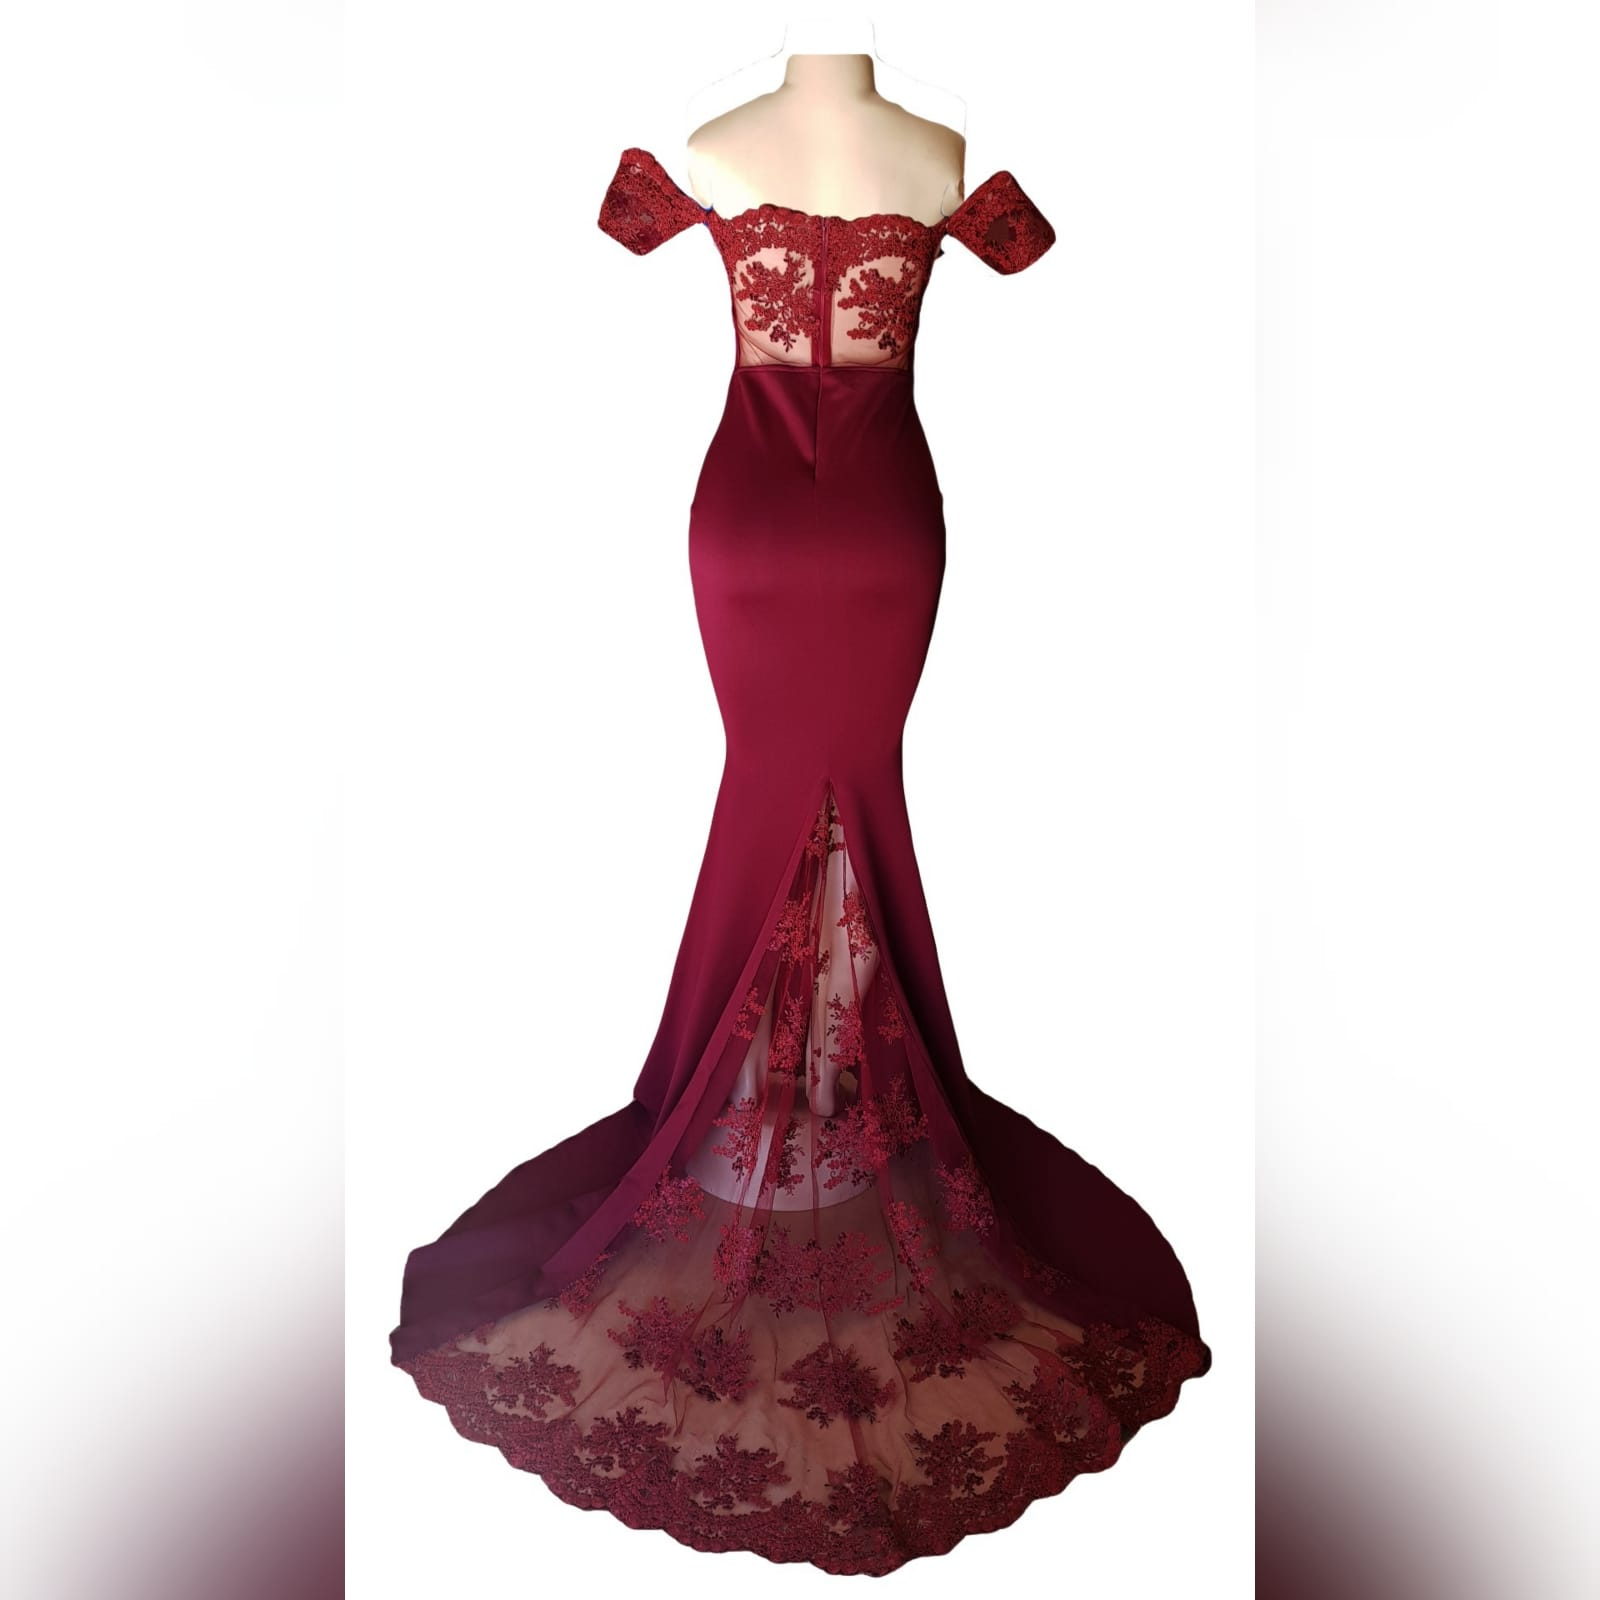 Maroon soft mermaid evening dress with lace bodice 2 maroon soft mermaid evening dress with lace bodice, back detailed with lace. With a lace train and lace border.